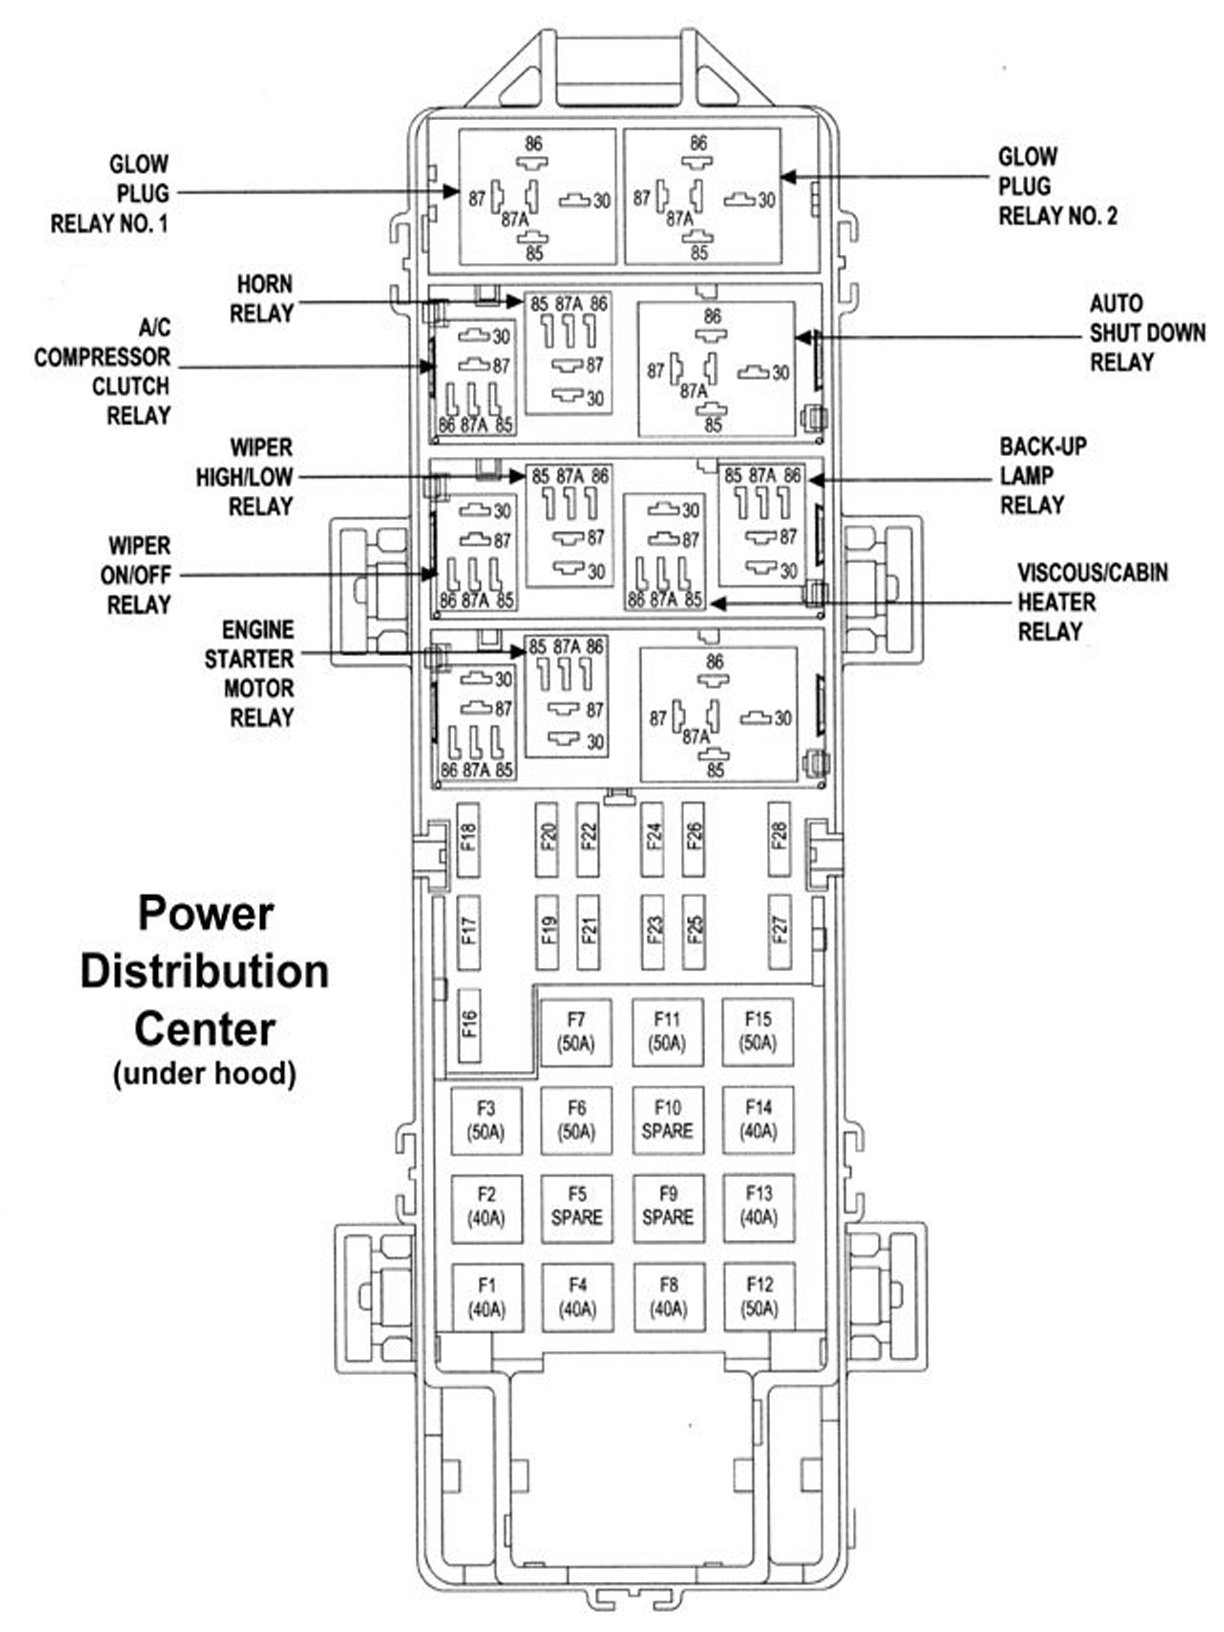 1999 Jeep Grand Cherokee Laredo Fuse Box - Wiring Diagrams Hubs - 2004 Jeep Grand Cherokee Wiring Diagram